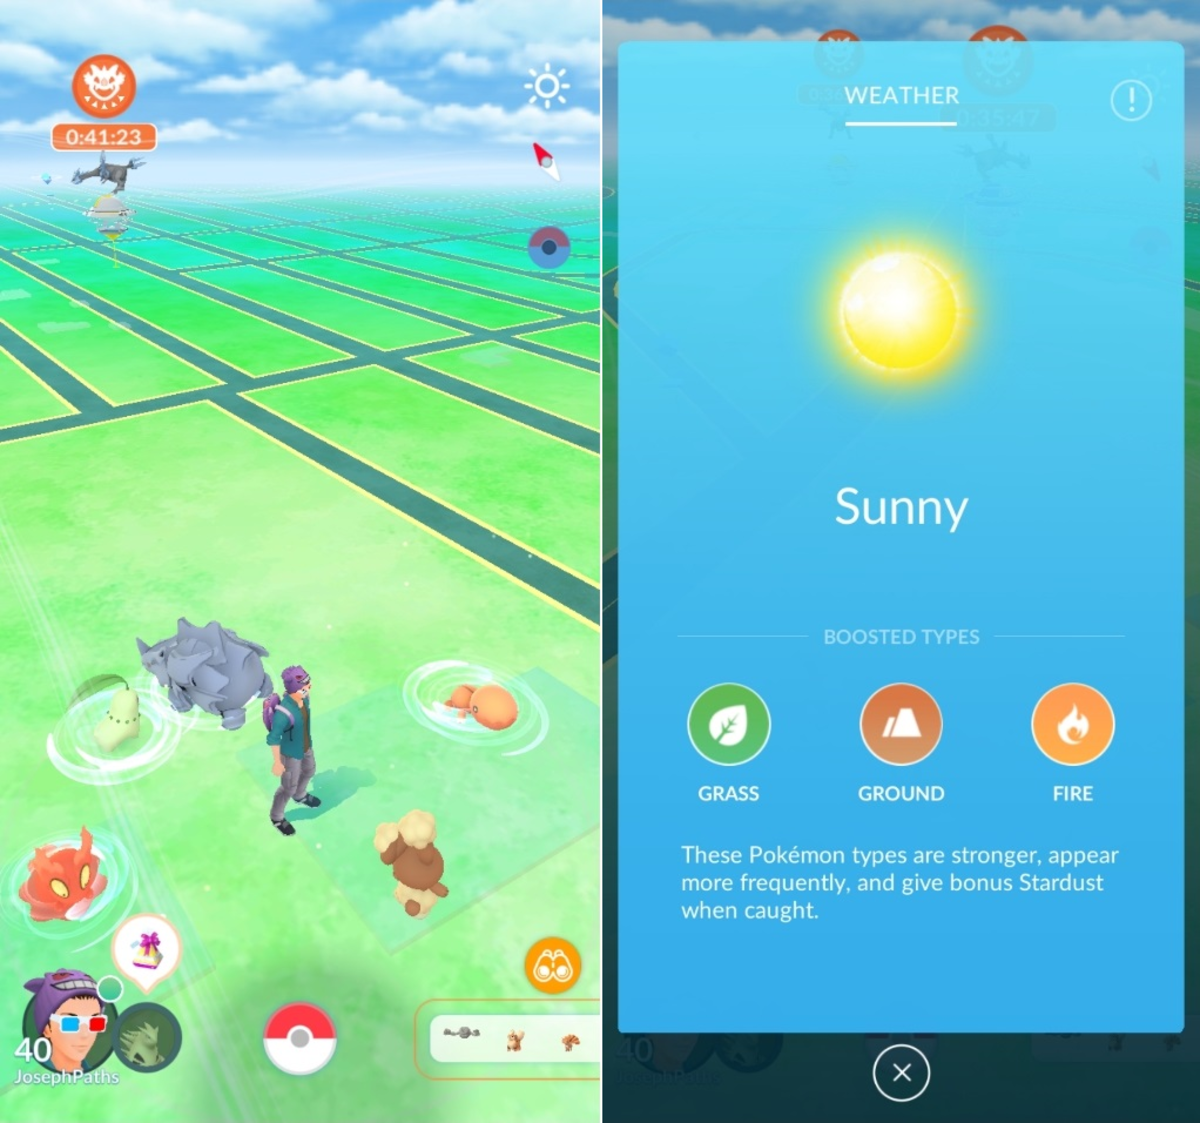 Slugma, Chikorita, Rhyhorn, and Trapinch are all being boosted by the weather.